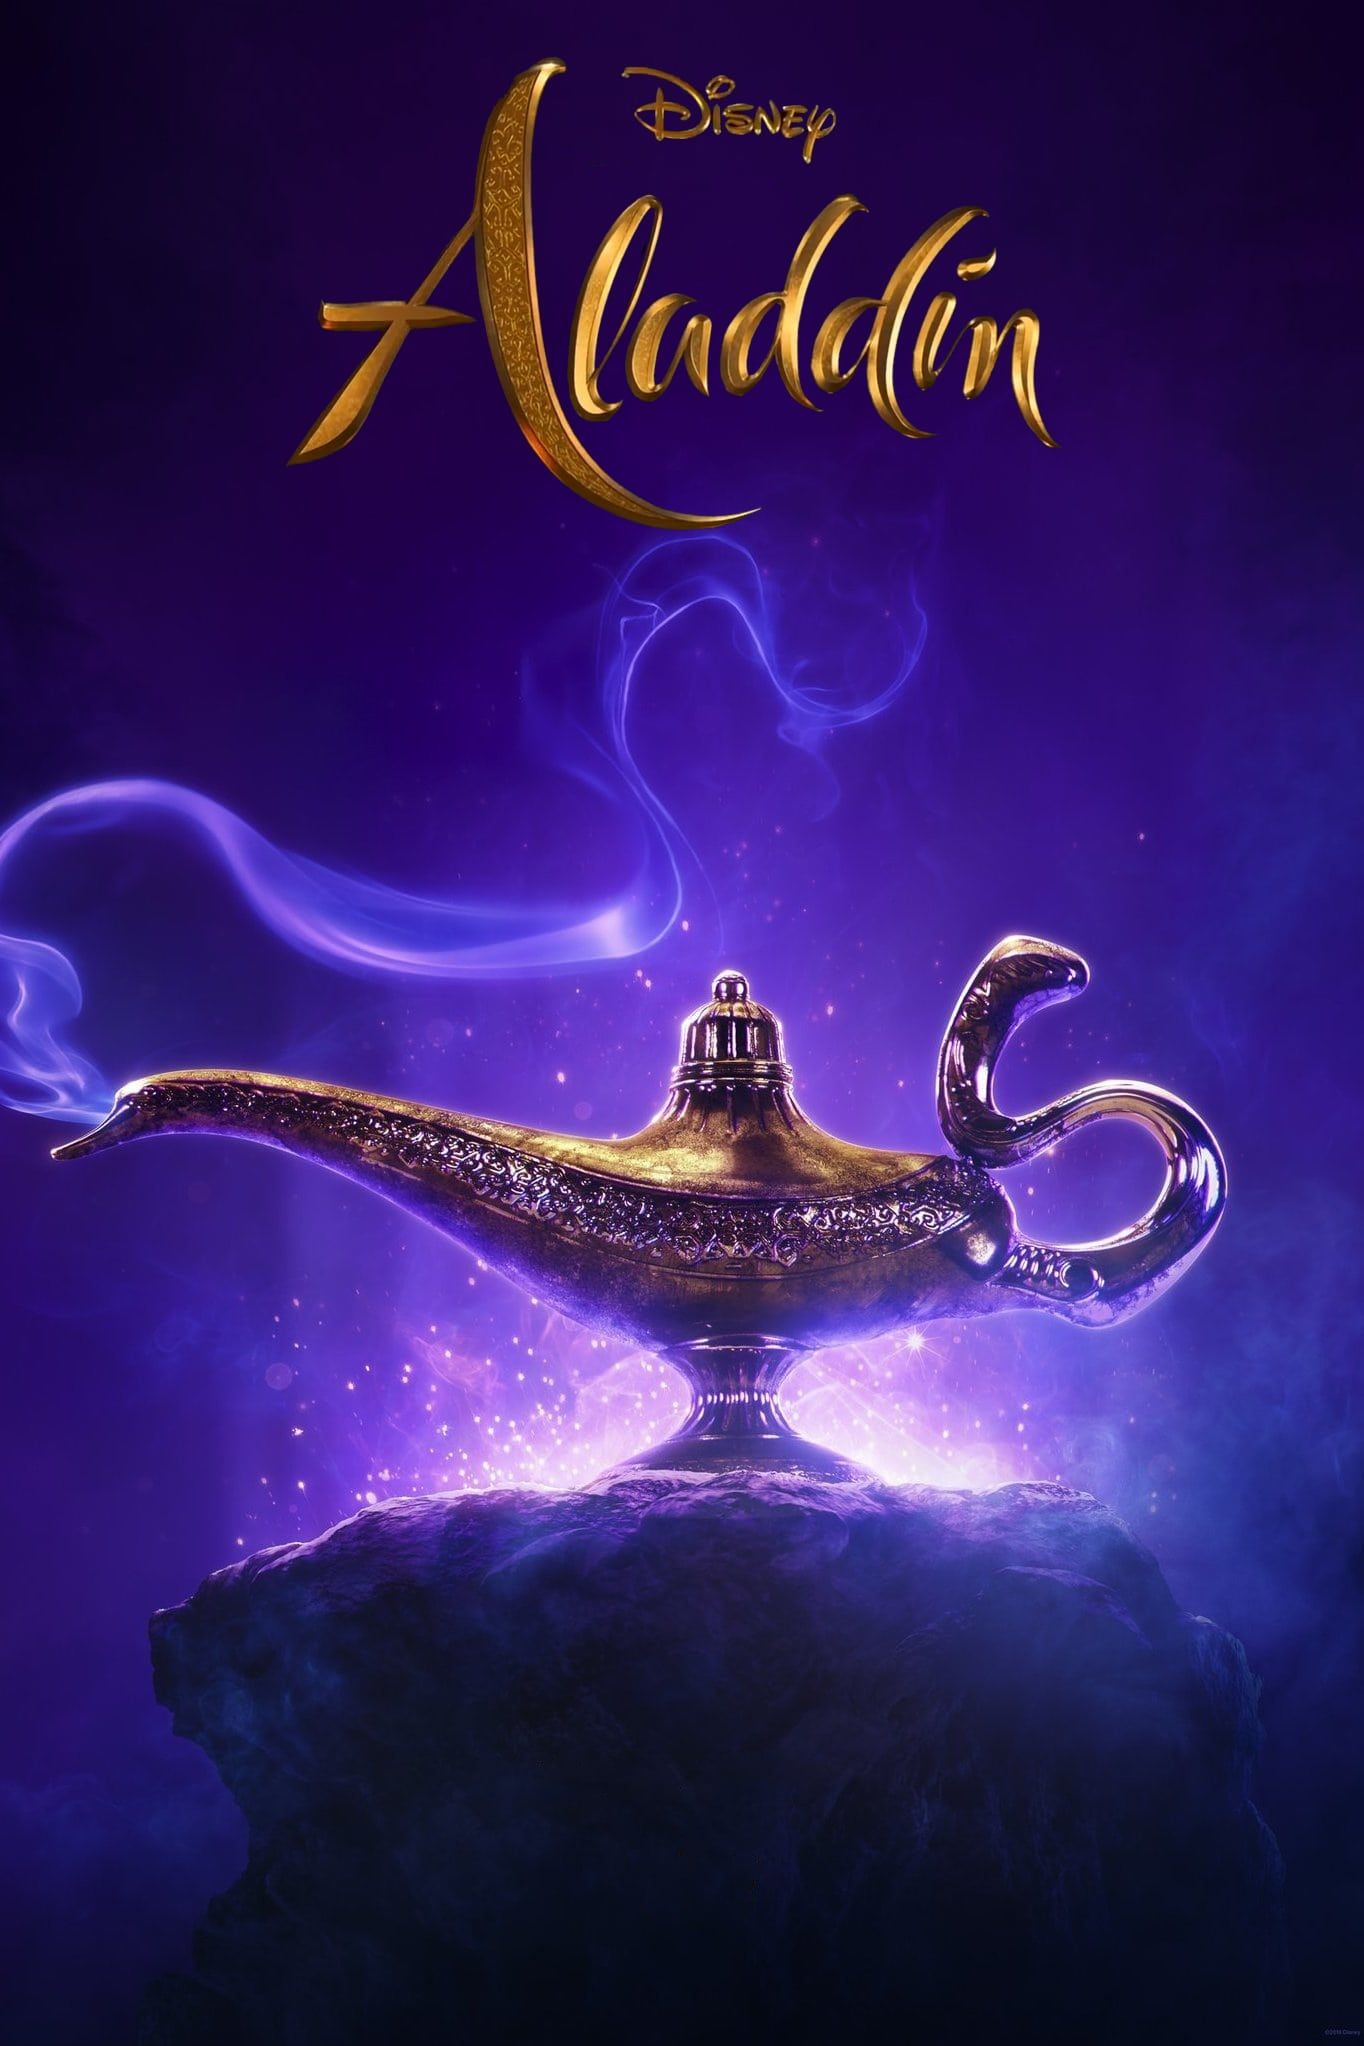 2019 Hd Aladdin 2019 English Full Movie Download Online Stream For Free Aladdin Full Movie Aladdin Movie Walt Disney Pictures